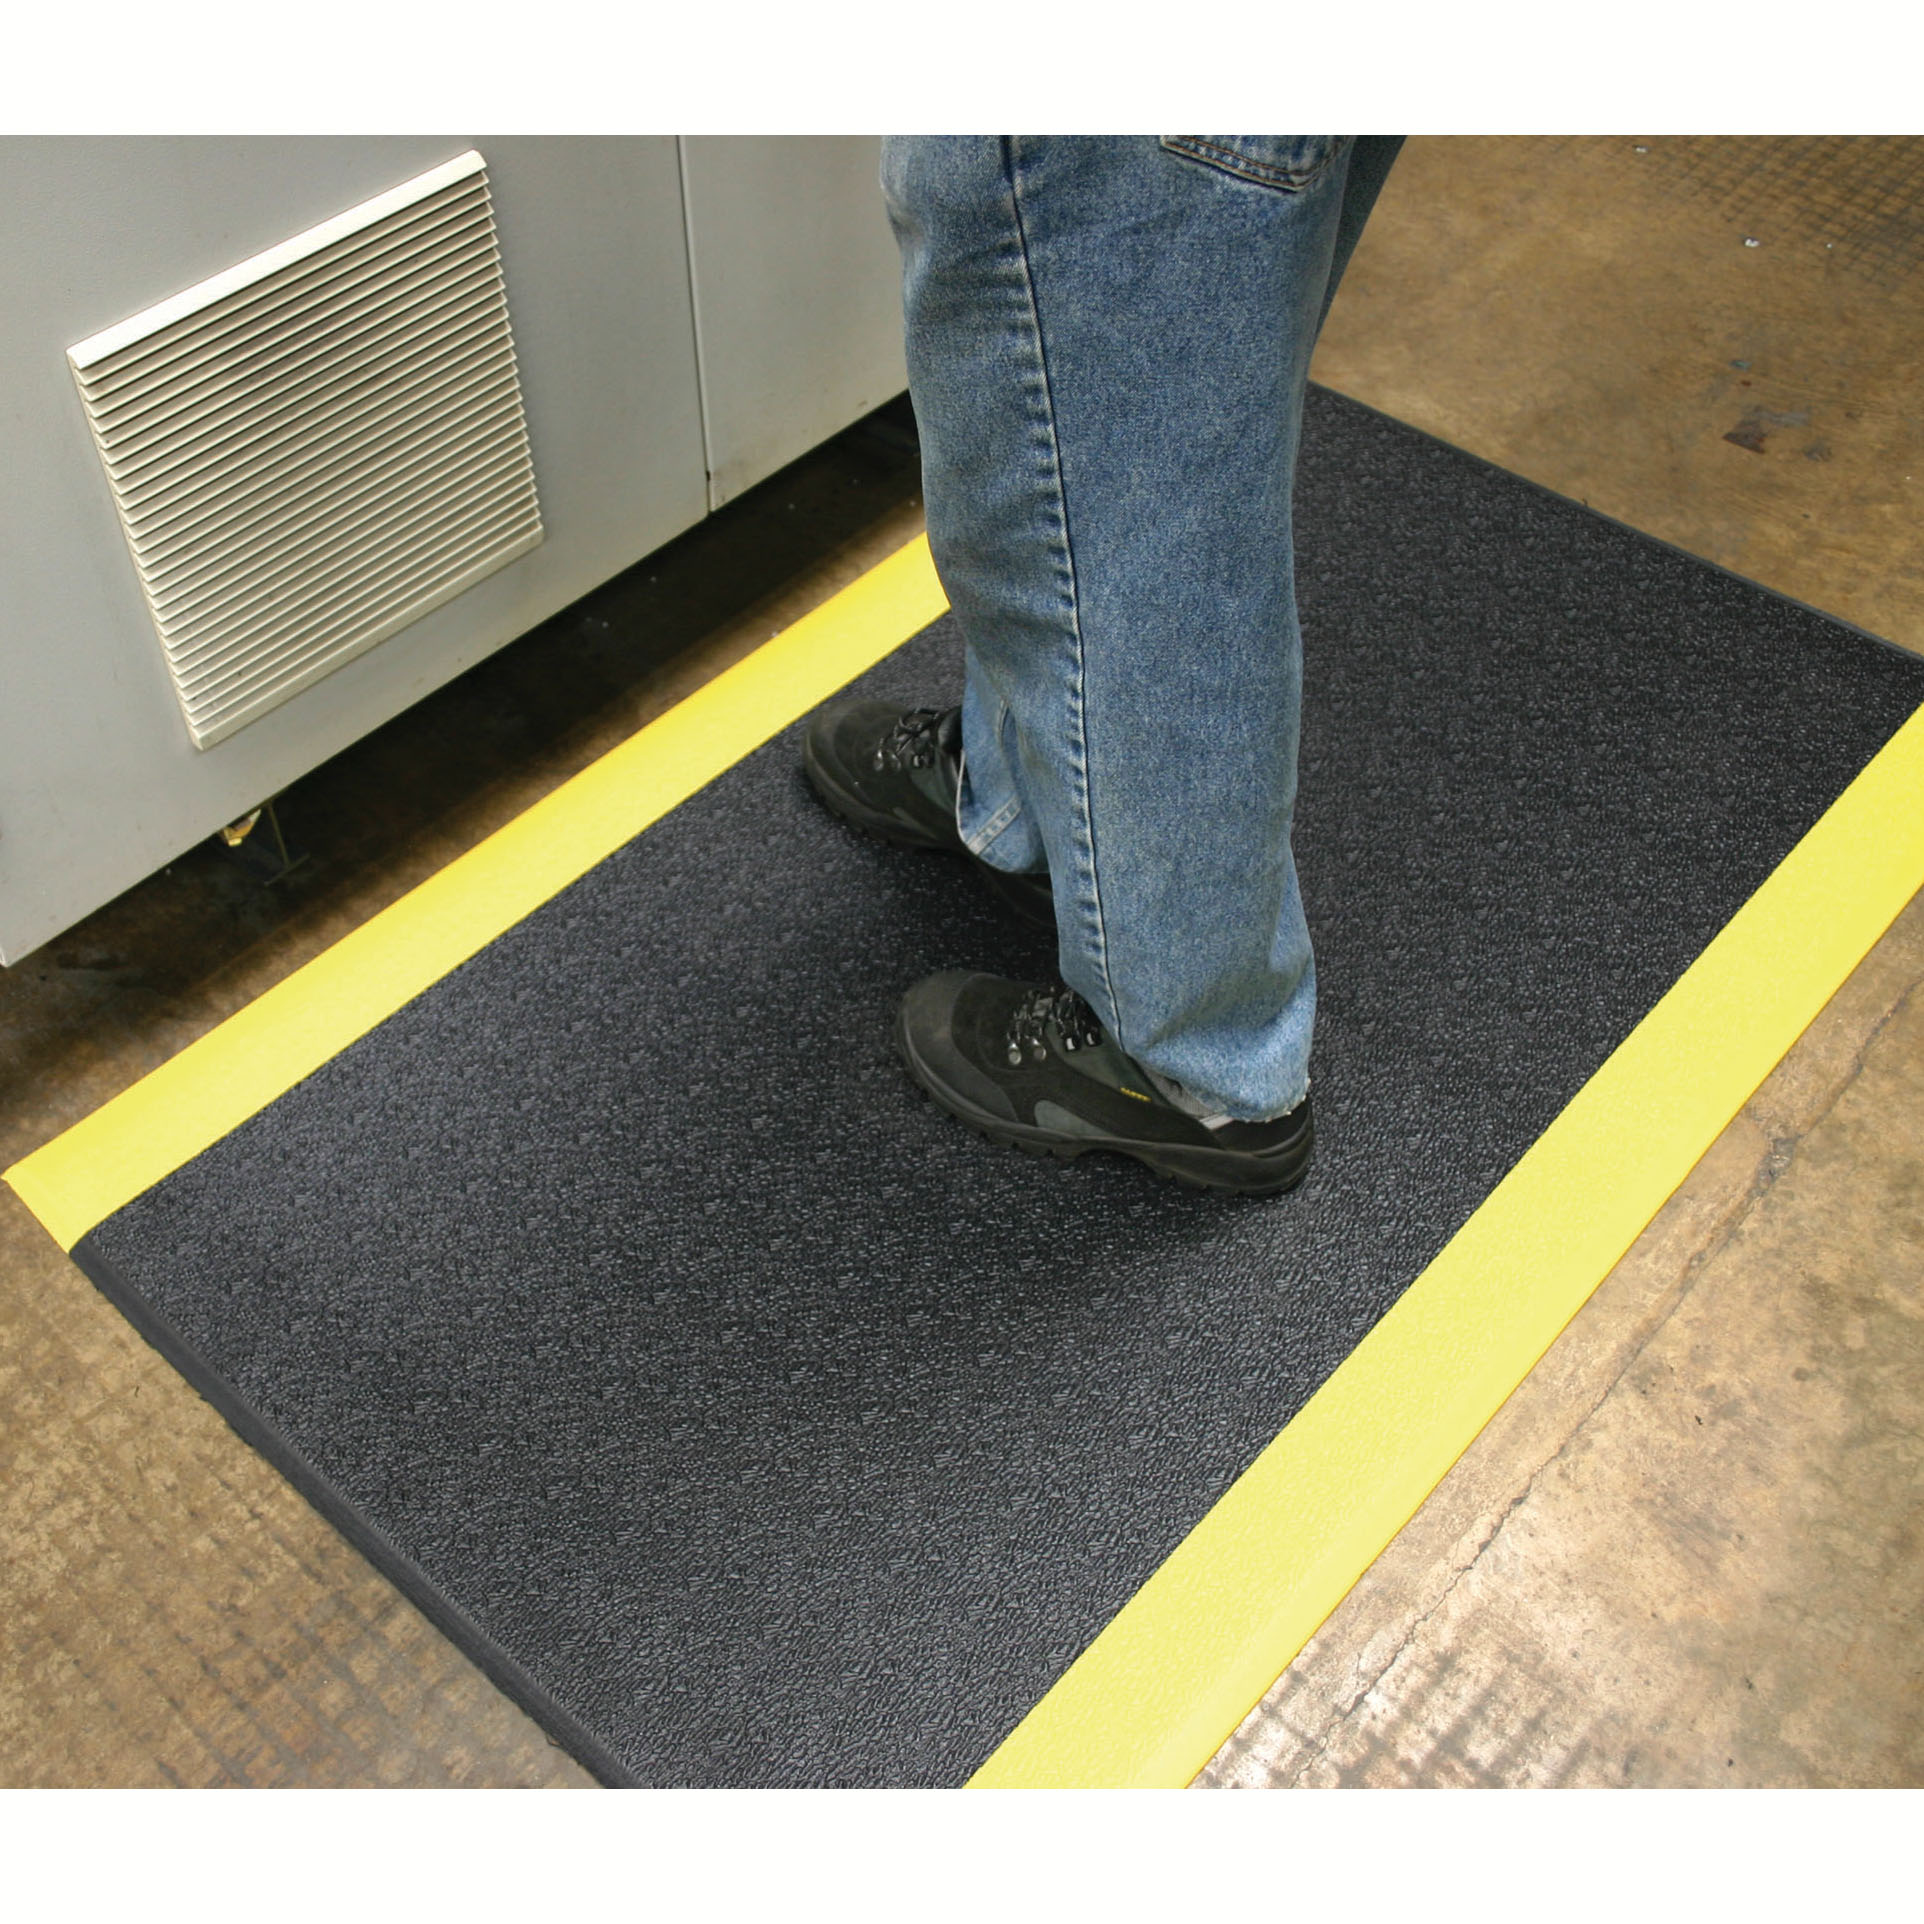 Orthomat Anti Fatigue Safety Mat 0.9 x 1.5m